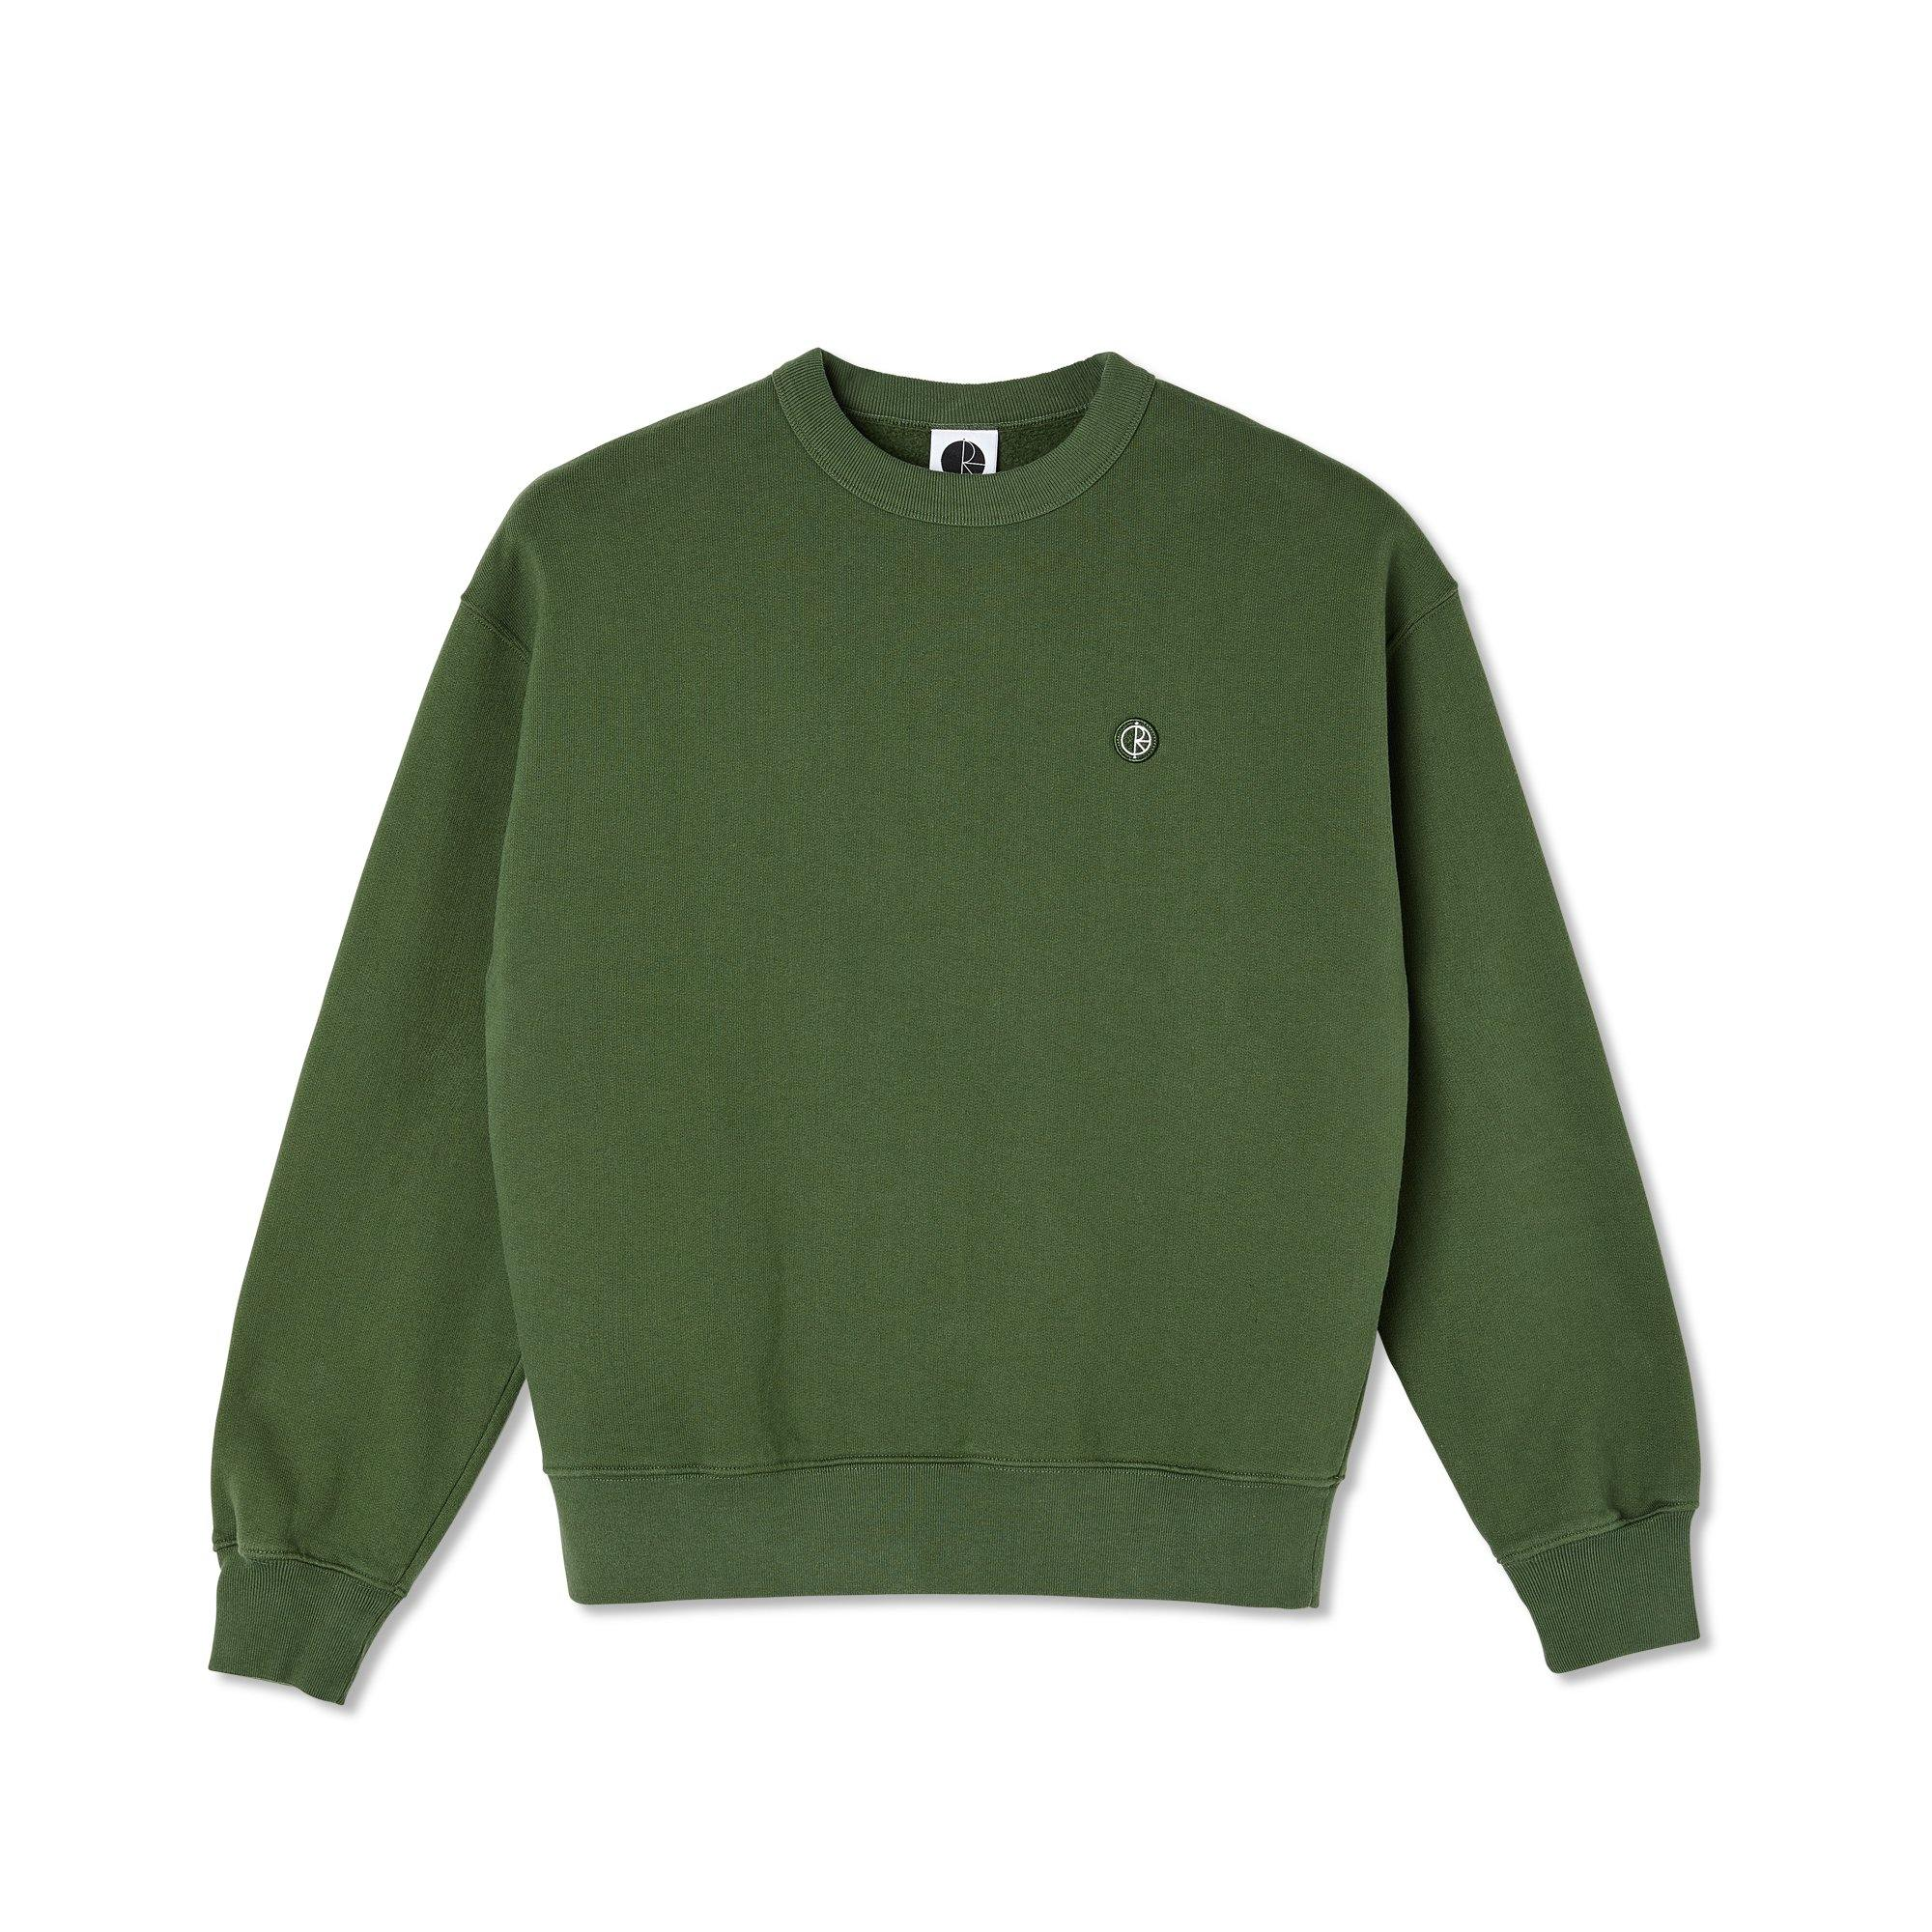 Sweatshirt Ras de cou POLAR Patch Crewneck Hunter Green - Vert foncé